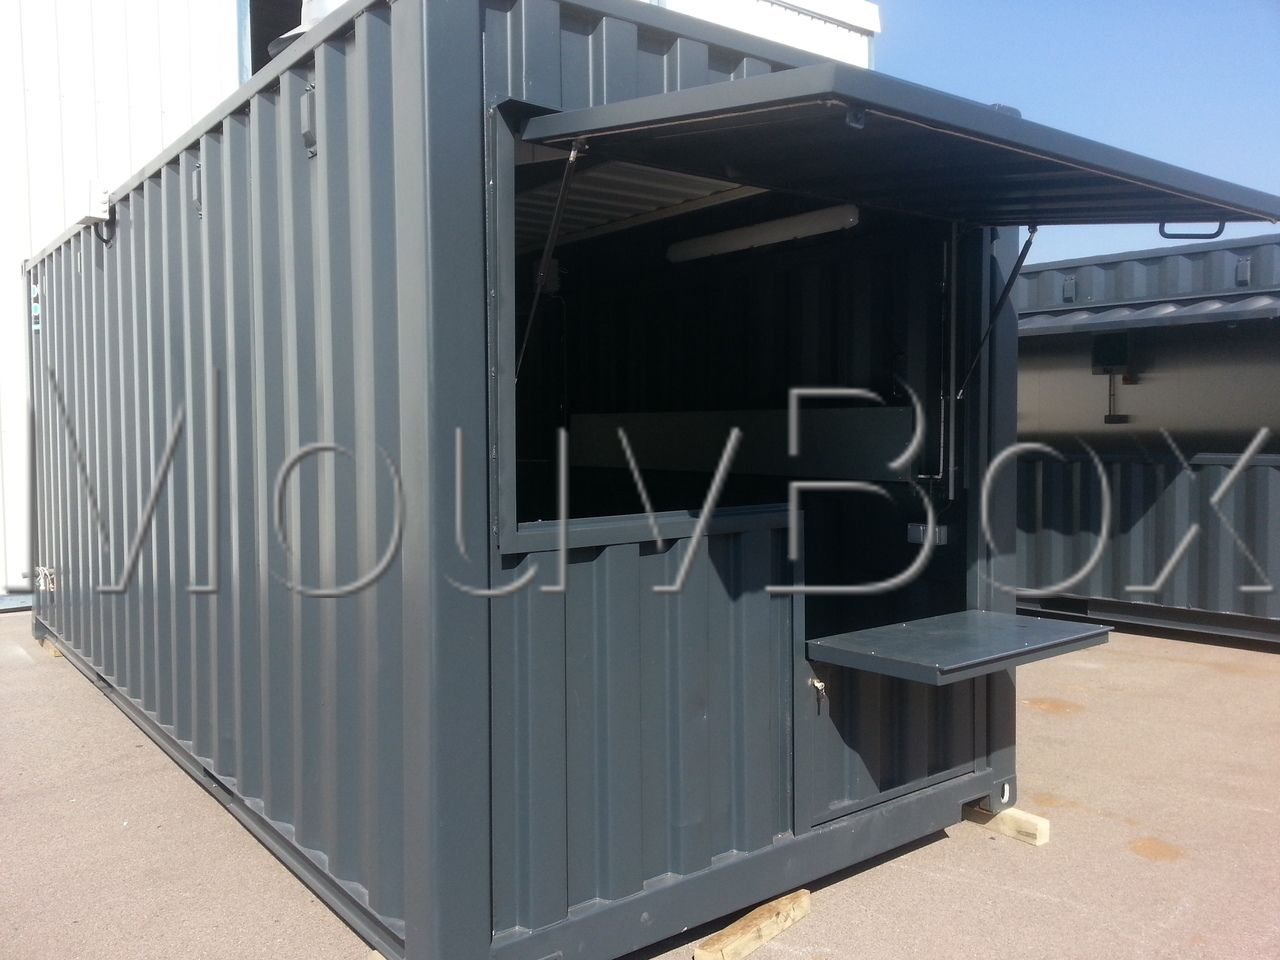 comment transformer un container en habitation awesome comment transformer un container en. Black Bedroom Furniture Sets. Home Design Ideas